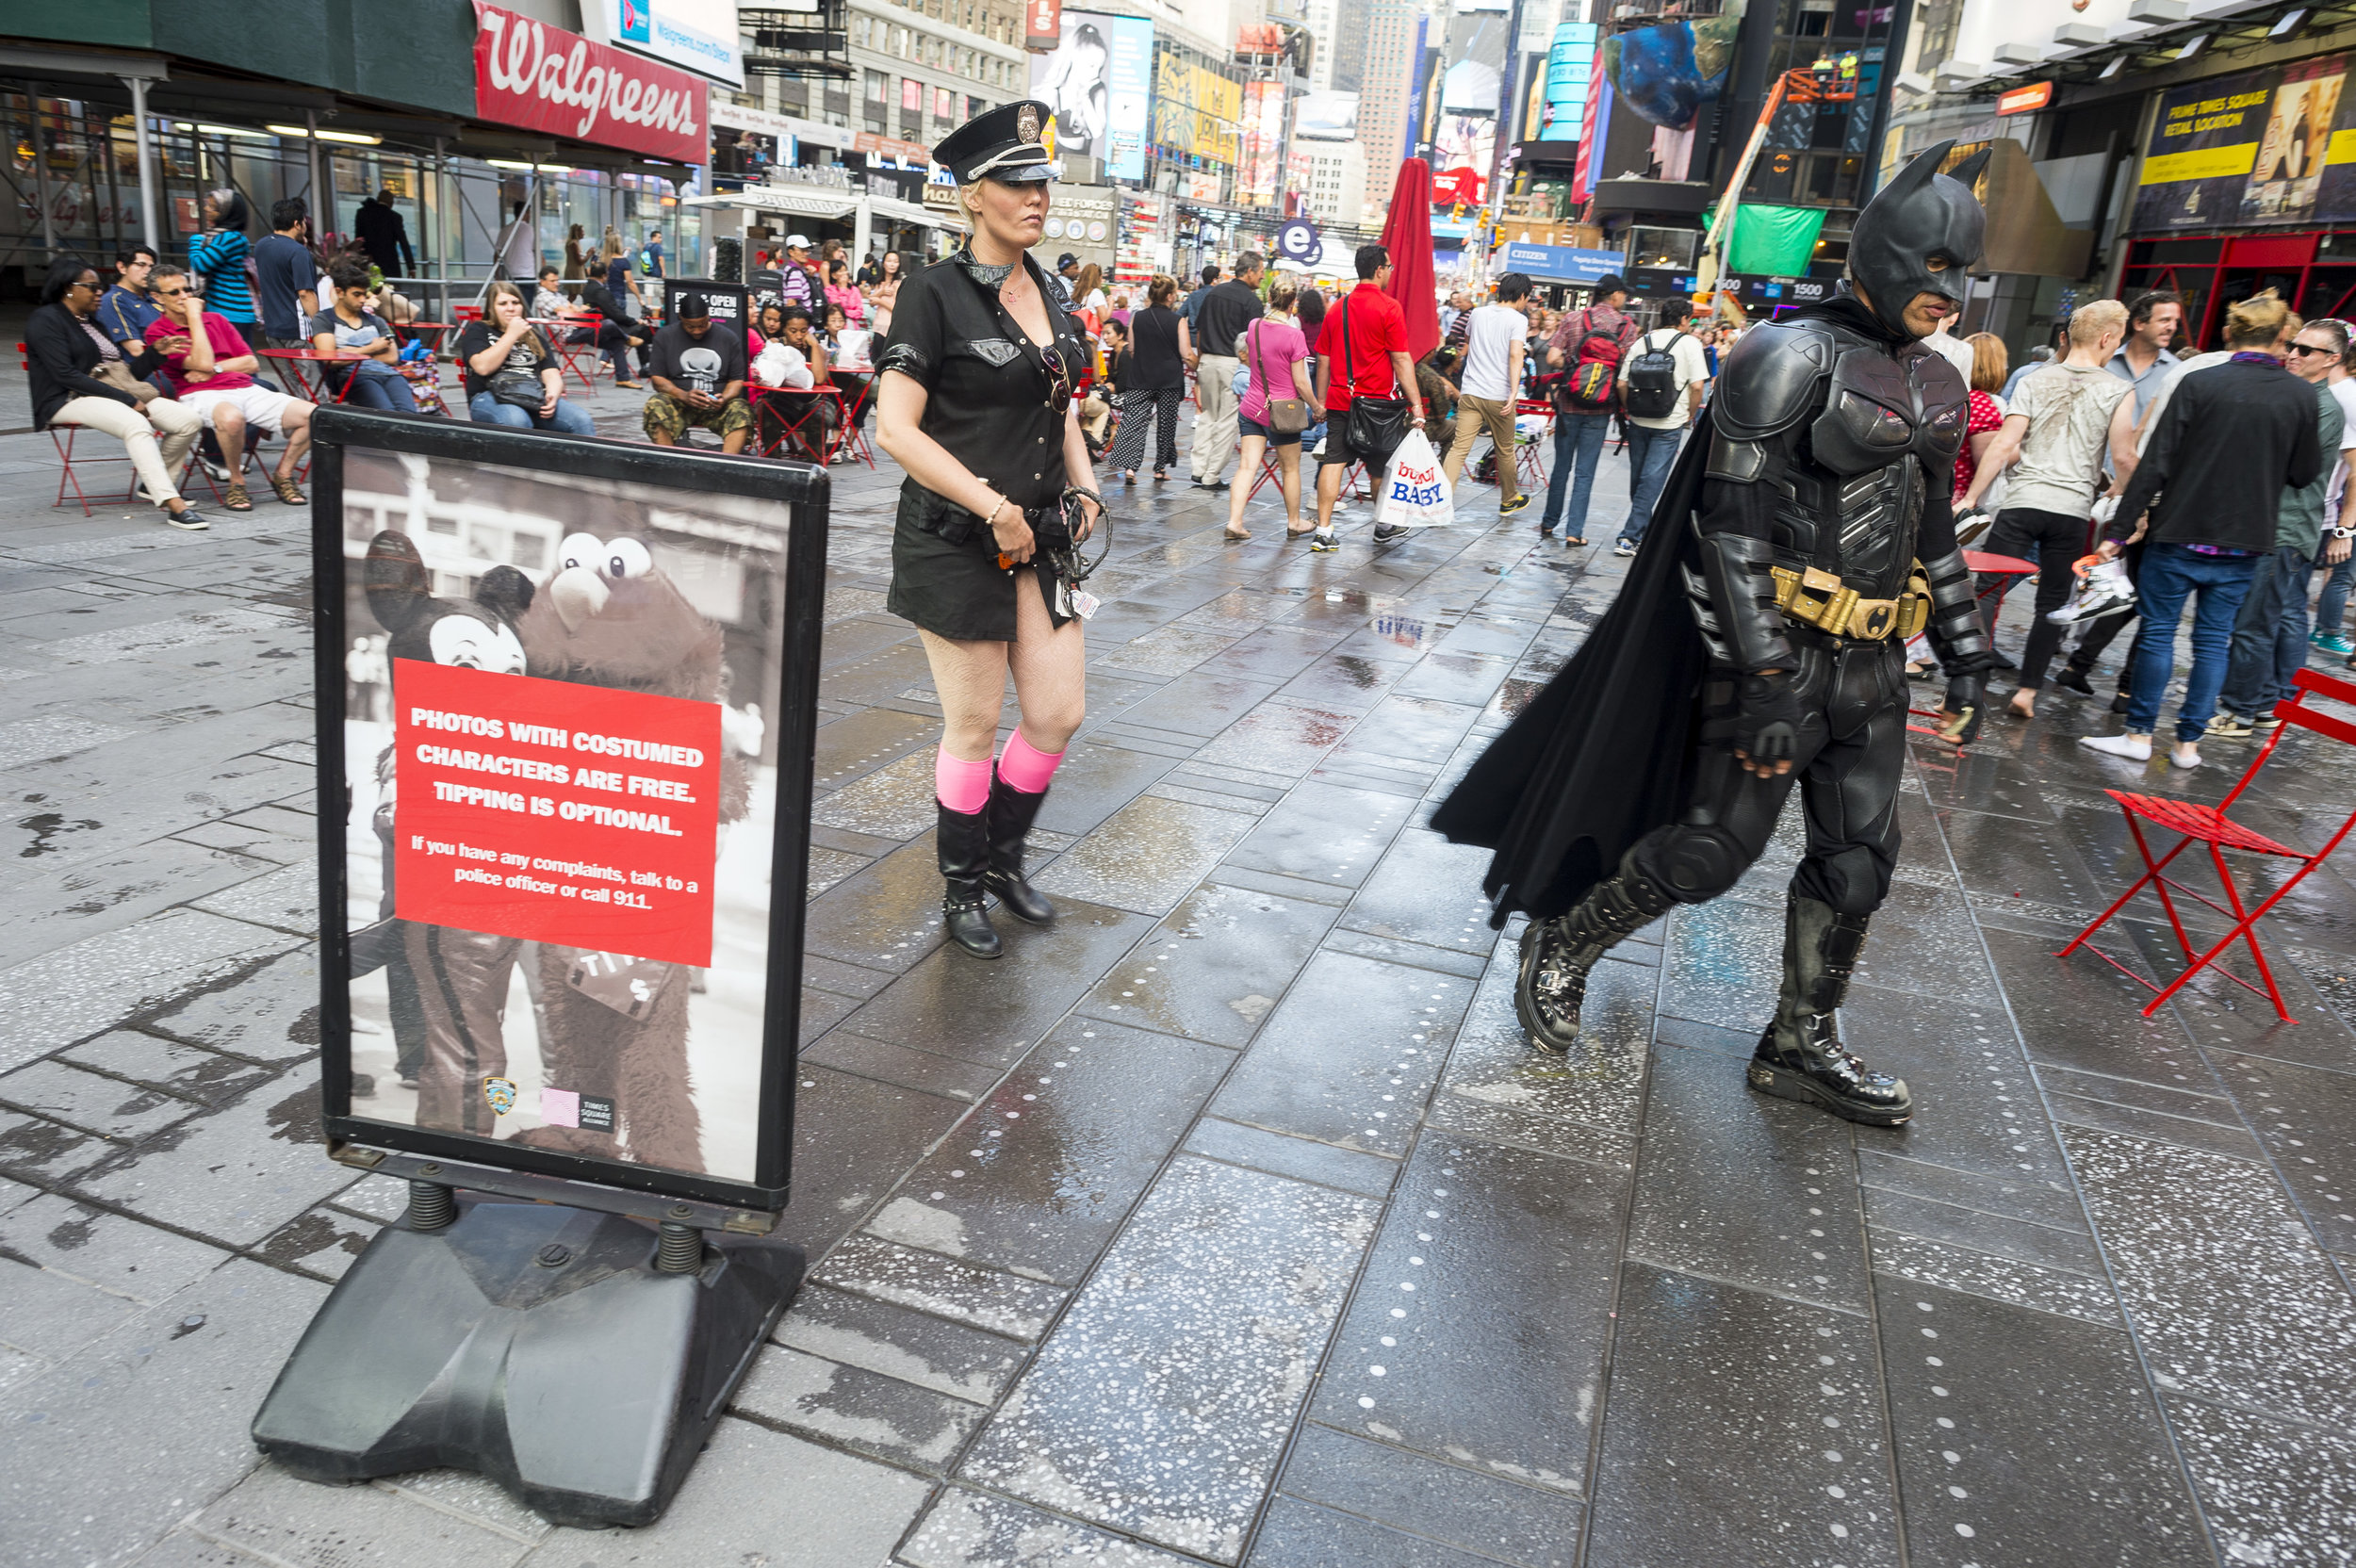 Jose and his girlfriend and fellow performer Elizabeth walk past a sign displaying rules for tipping costumed characters during his shift as Batman in Times Square.